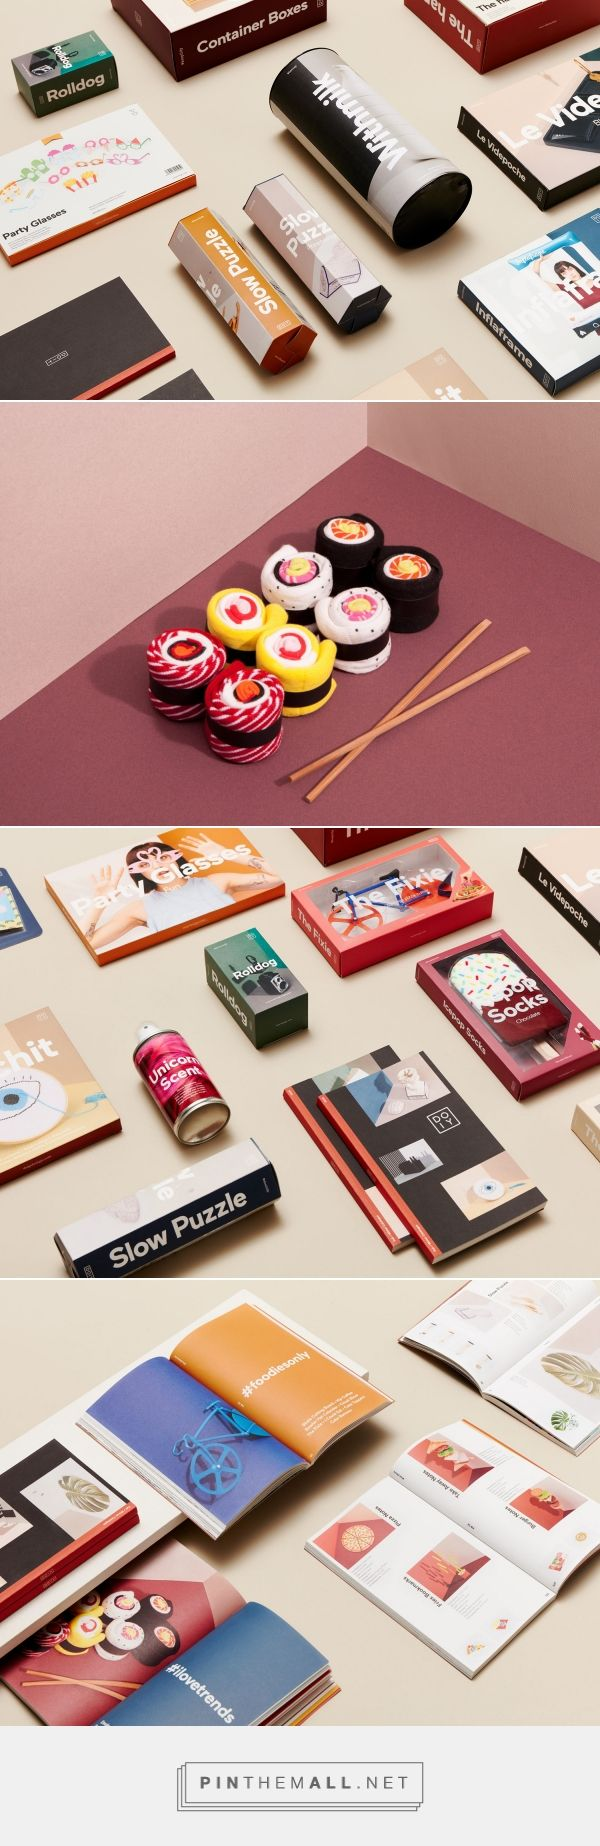 DOIY is product design company creating playful objects that move between the useful and the more whimsical. by Folch